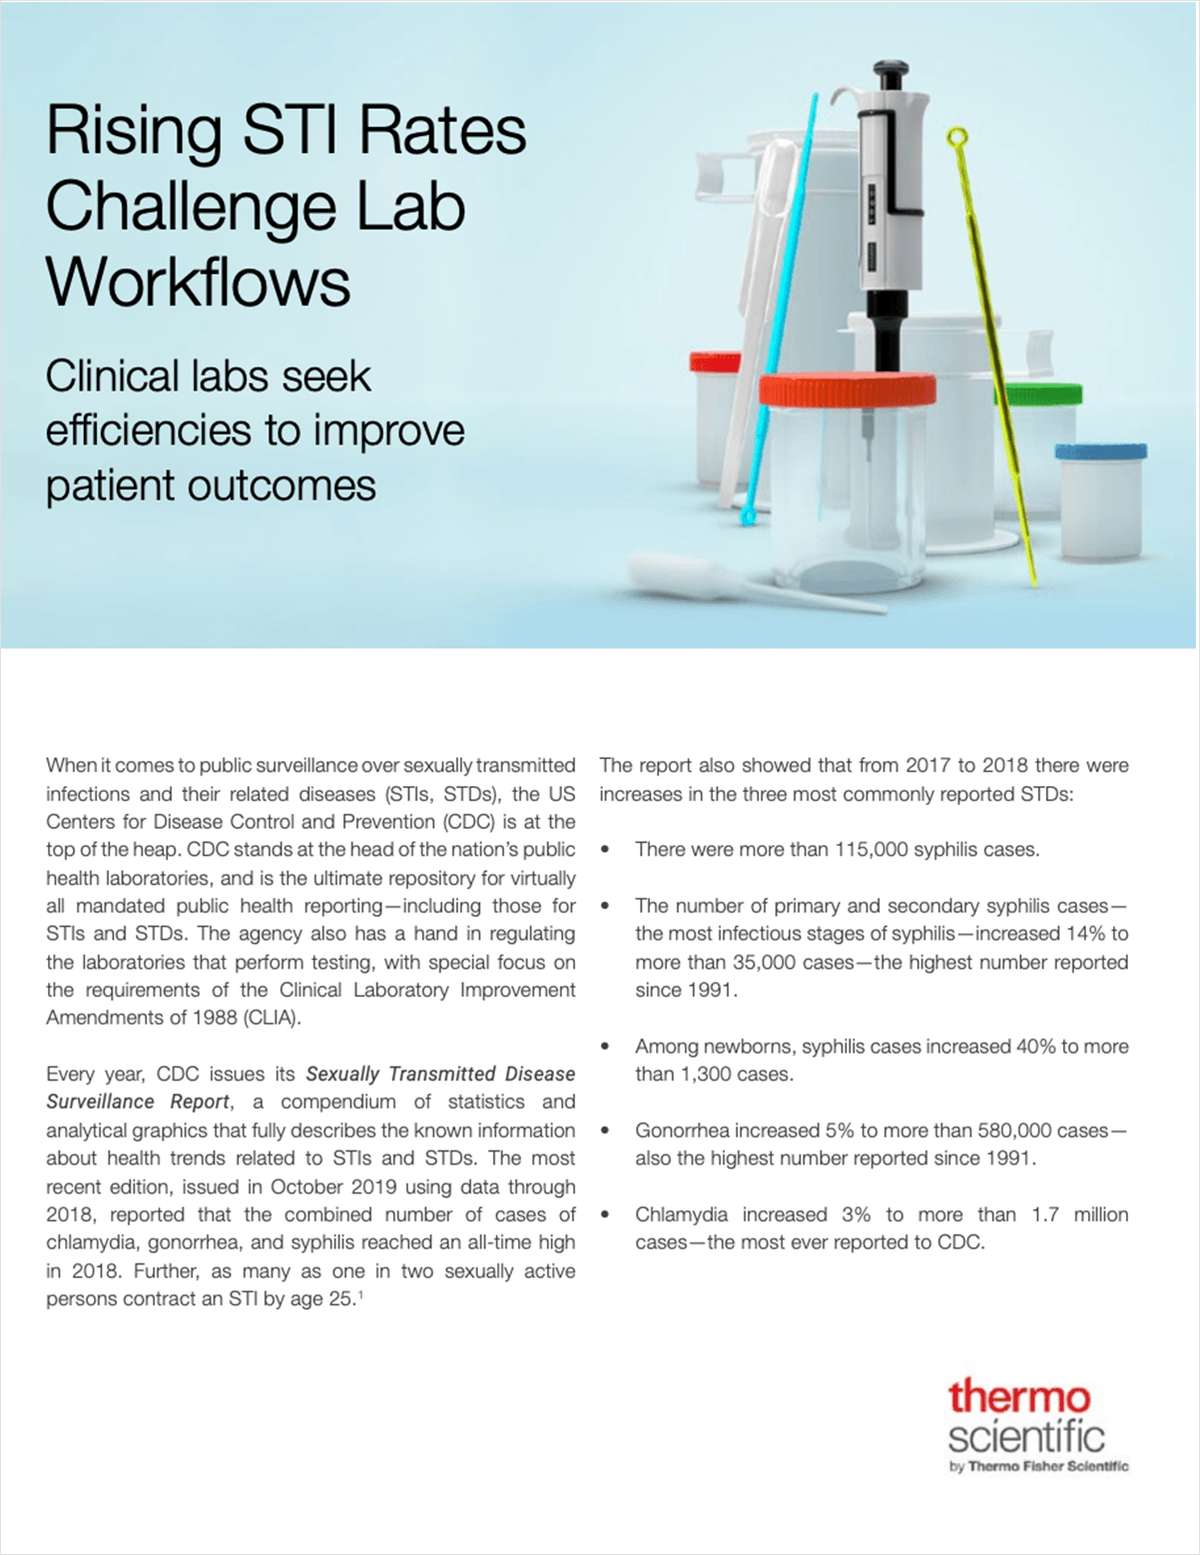 Is Your Lab Ready for Rising STI Rates?